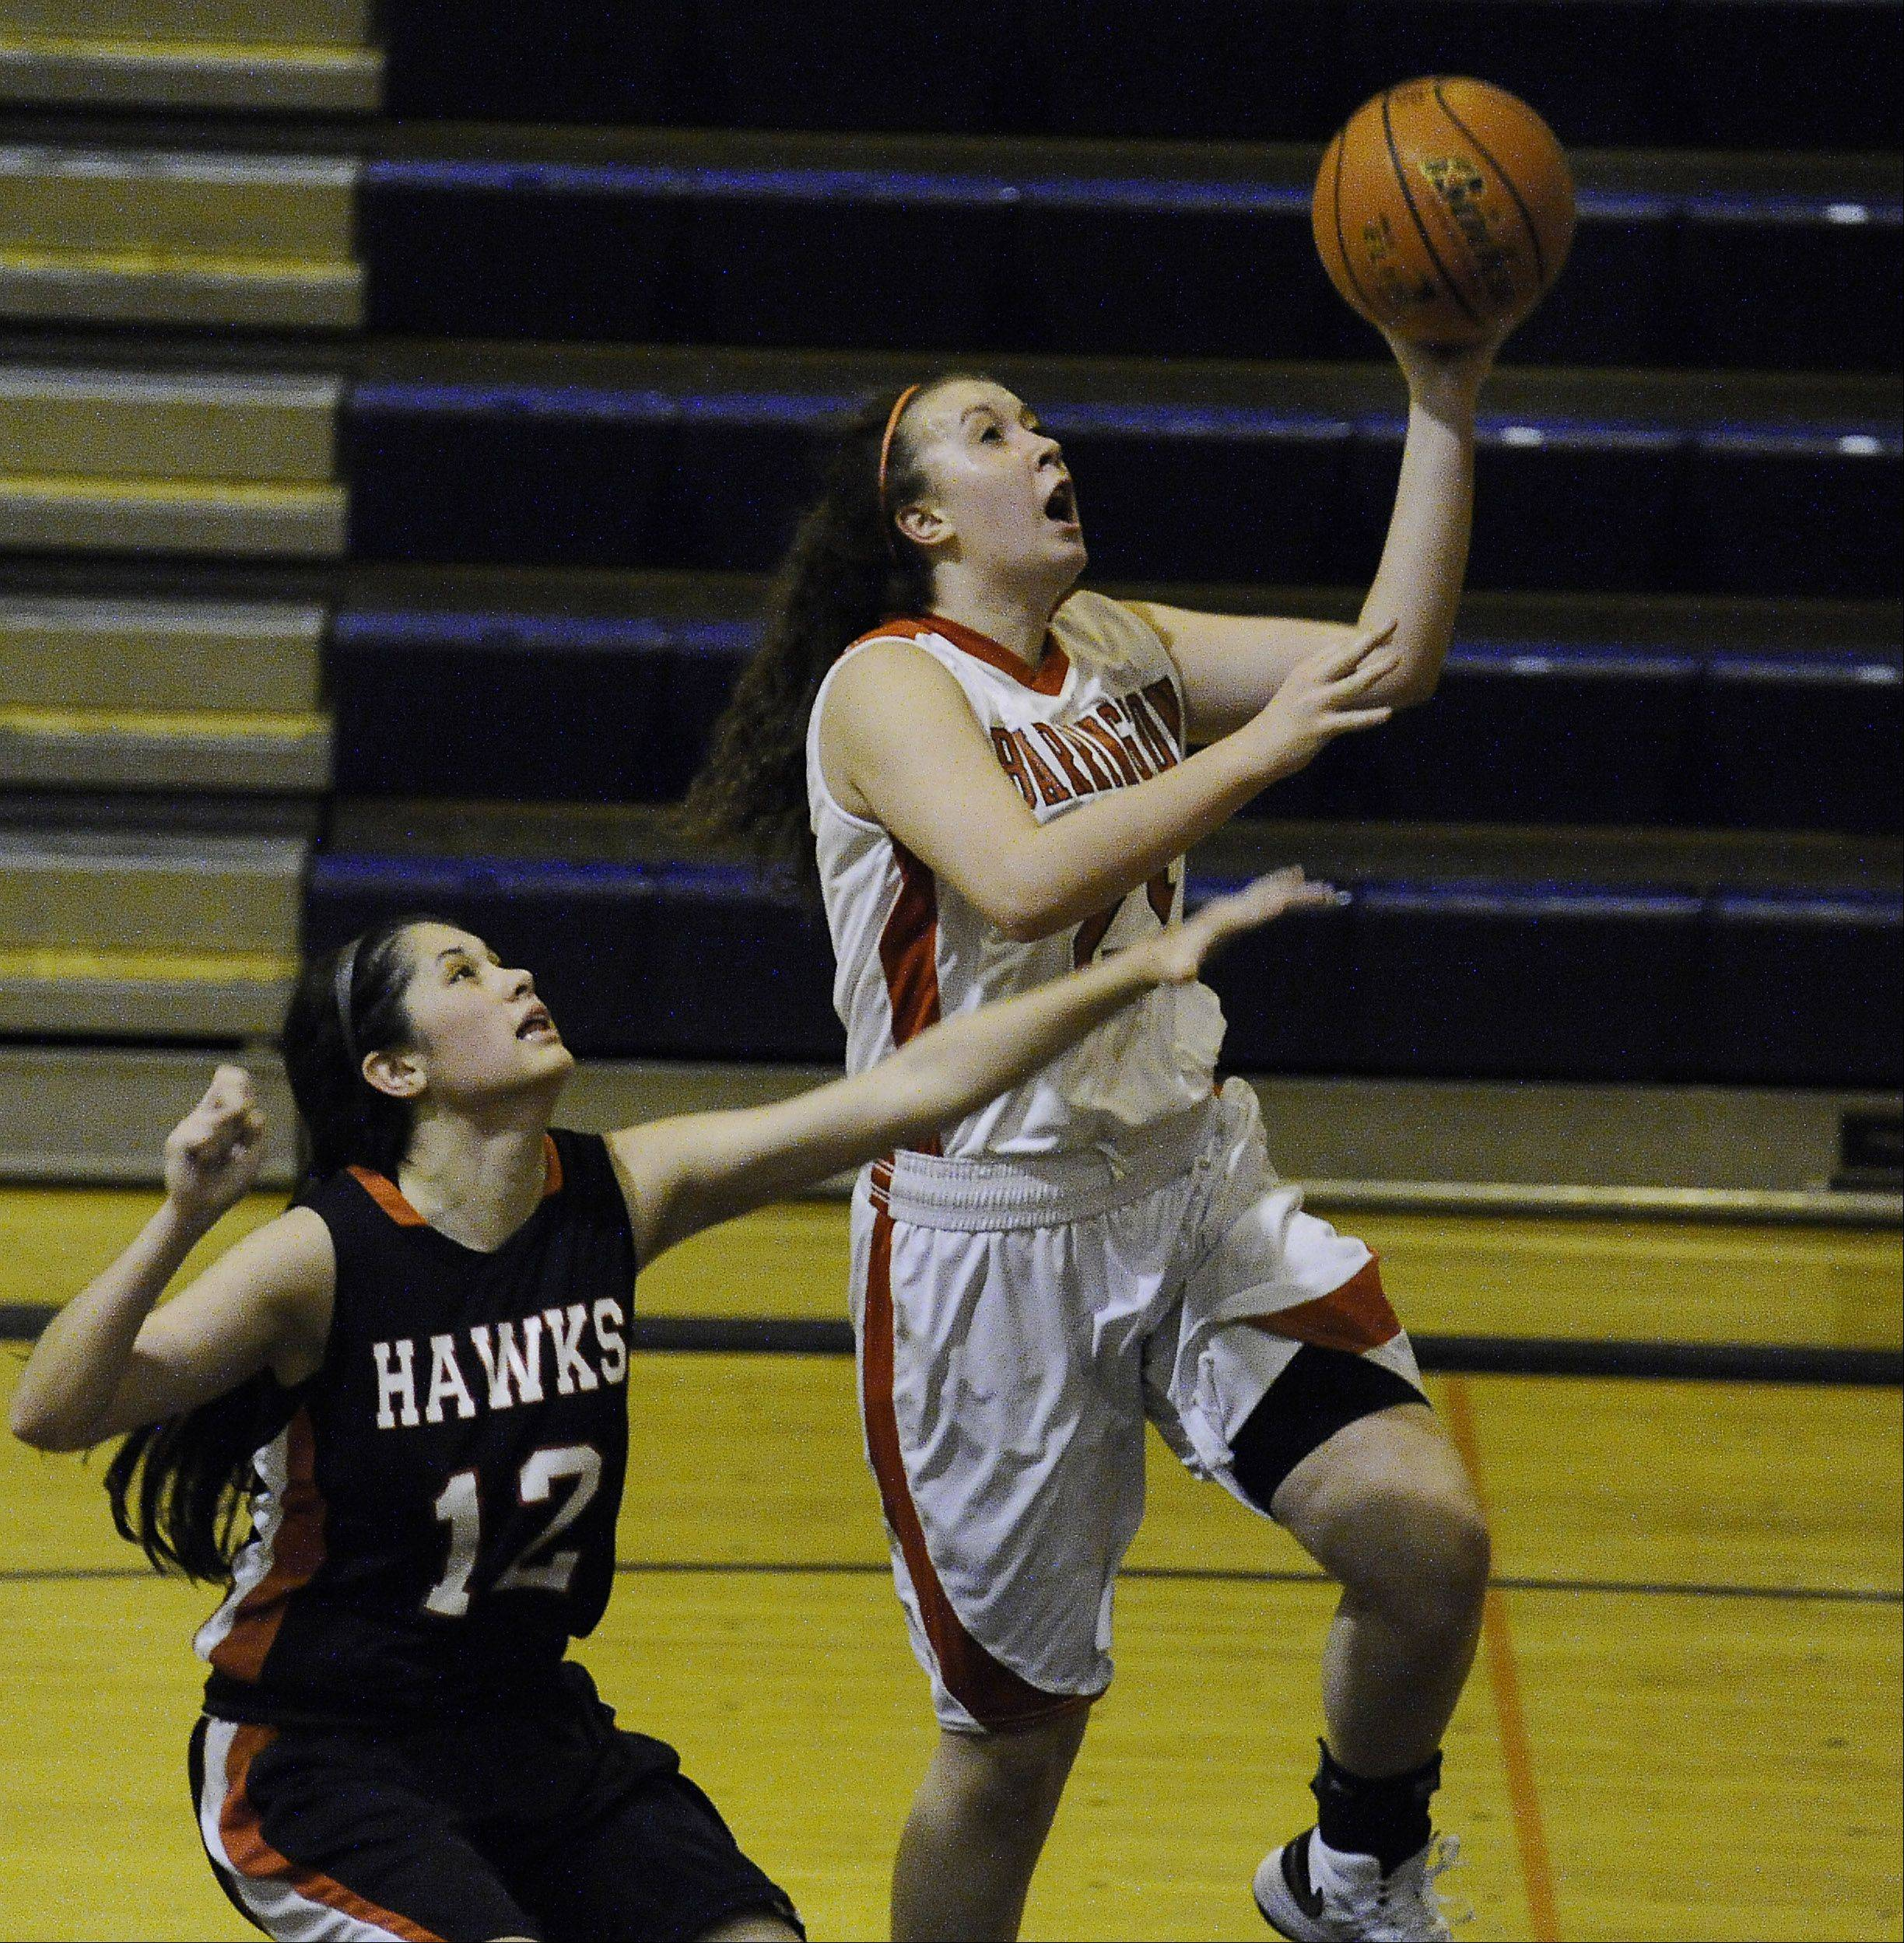 Maine South�s Mackenzie Duffy is unable to stop the drive to the basket by Aoife Callanan of Barrington during the Bison Classic girls varsity basketball Thanksgiving Tournament at Buffalo Grove High School on Thursday.